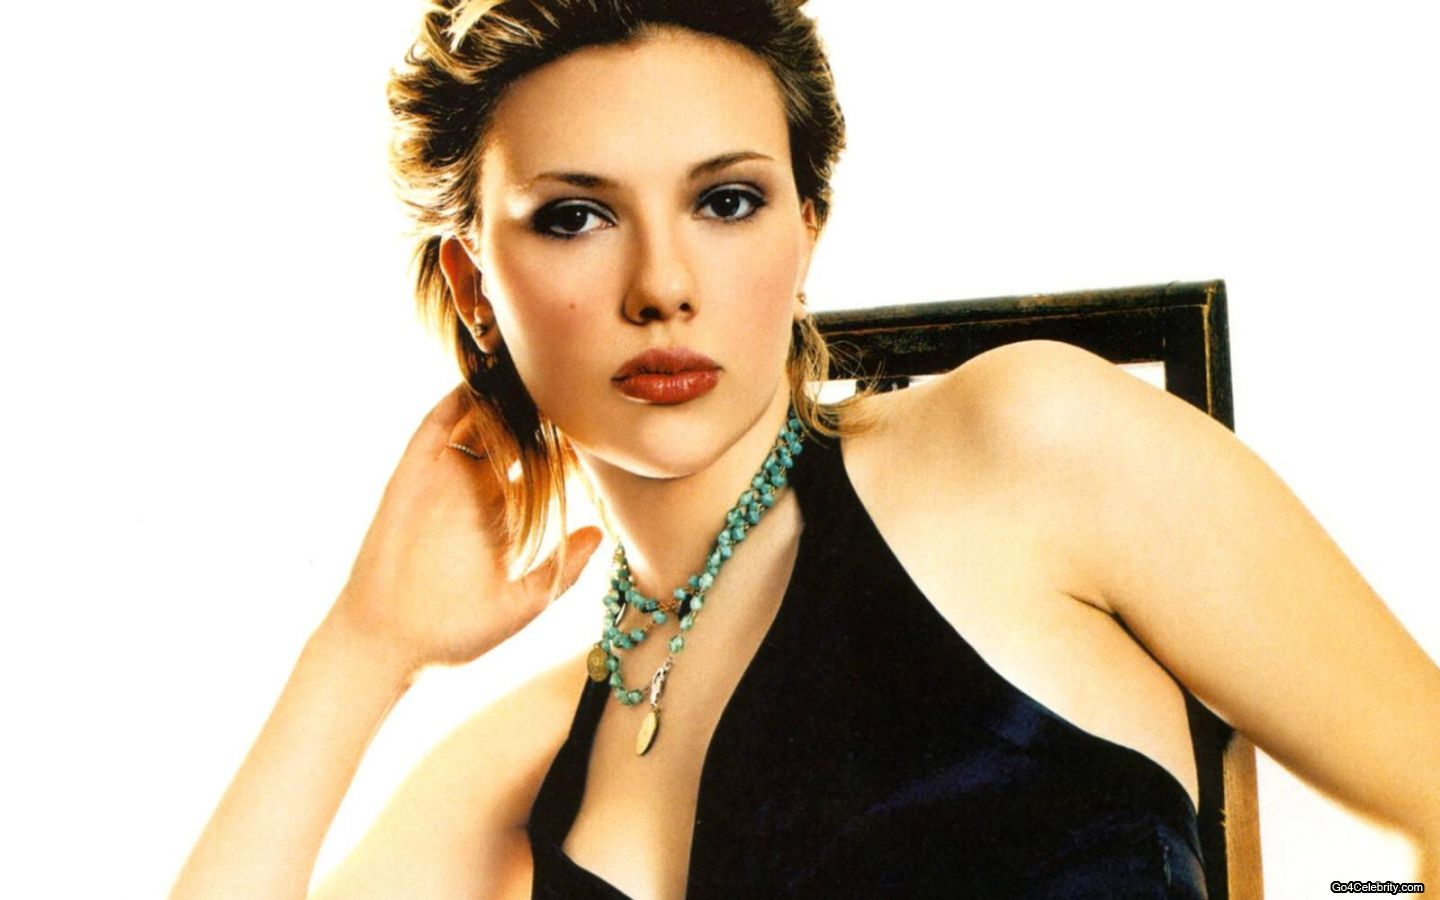 Scarlett Johansson Wallpaper: Anime Wallpaper: Scarlett Johansson Wallpaper Pack 3